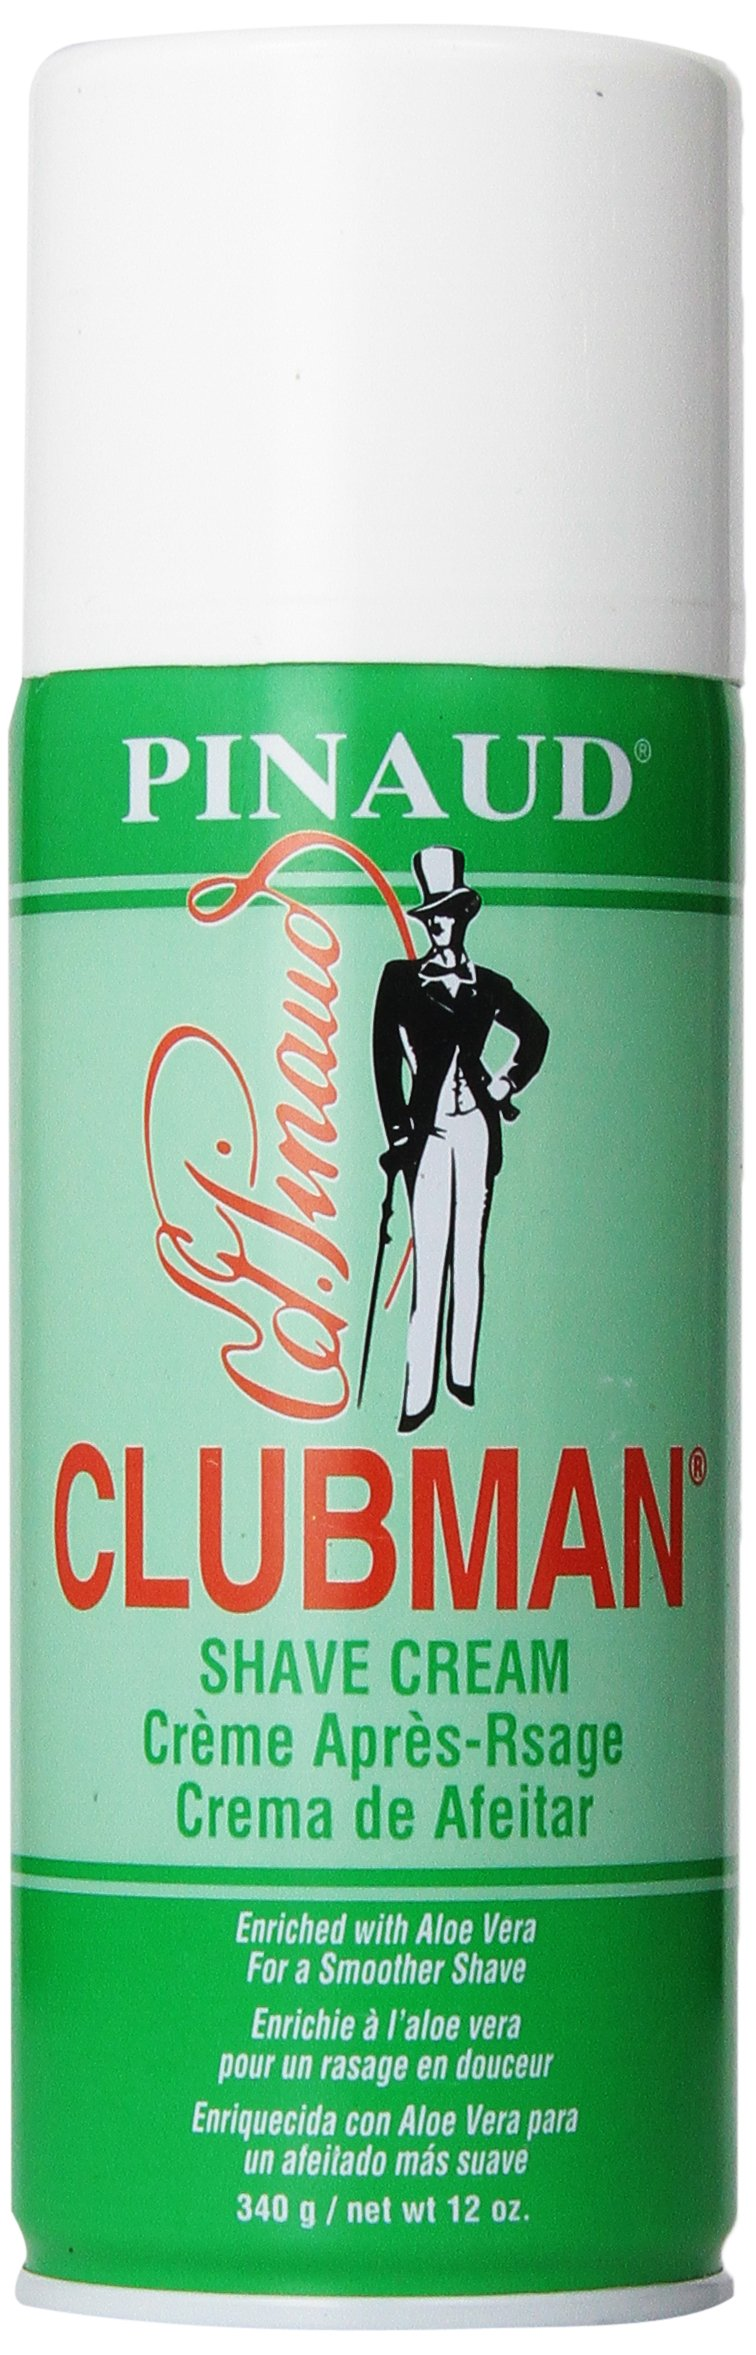 Clubman Shave Cream, 12 Ounce